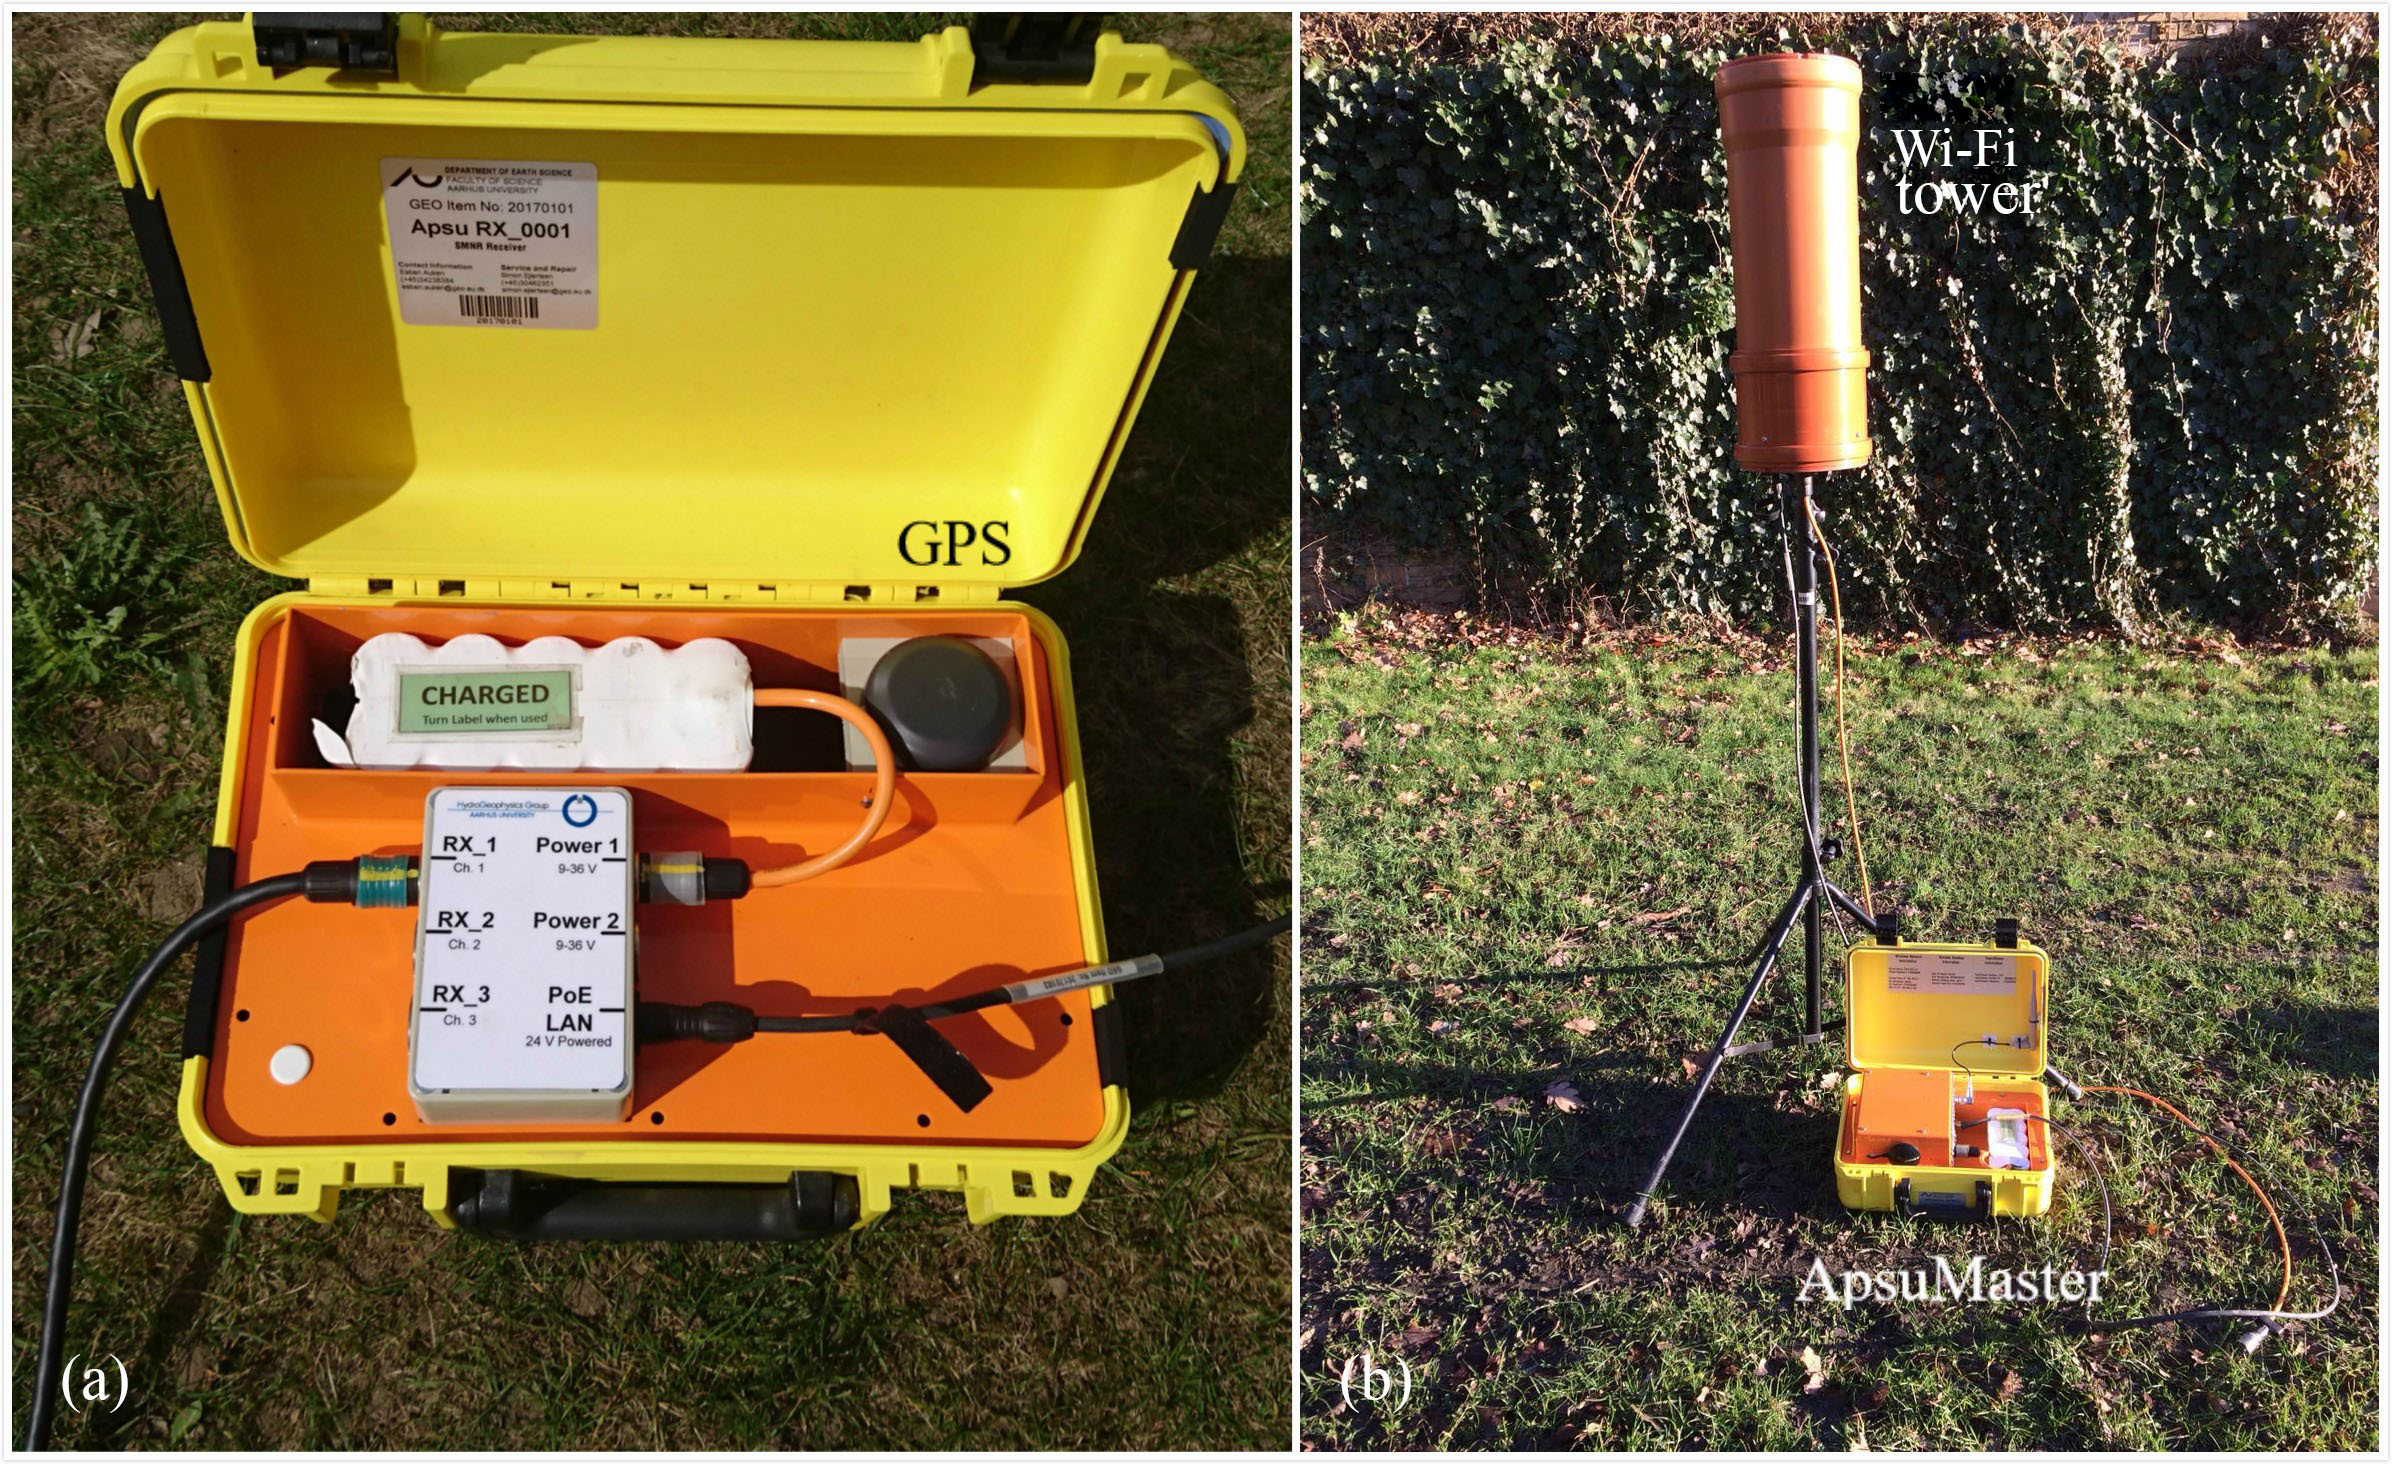 GI - Apsu: a wireless multichannel receiver system for